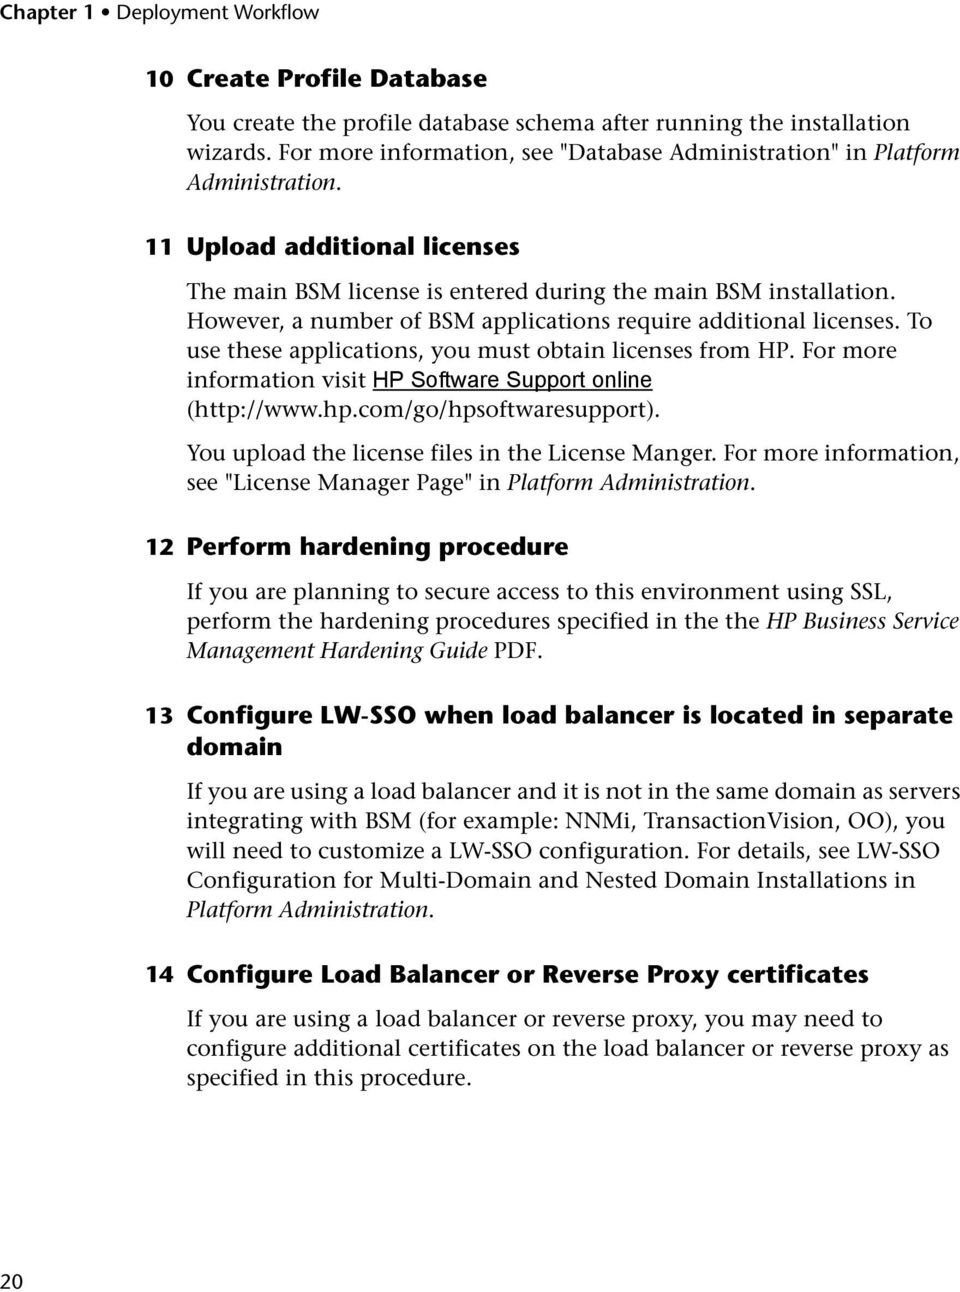 However, a number of BSM applications require additional licenses. To use these applications, you must obtain licenses from HP. For more information visit HP Software Support online (http://www.hp.